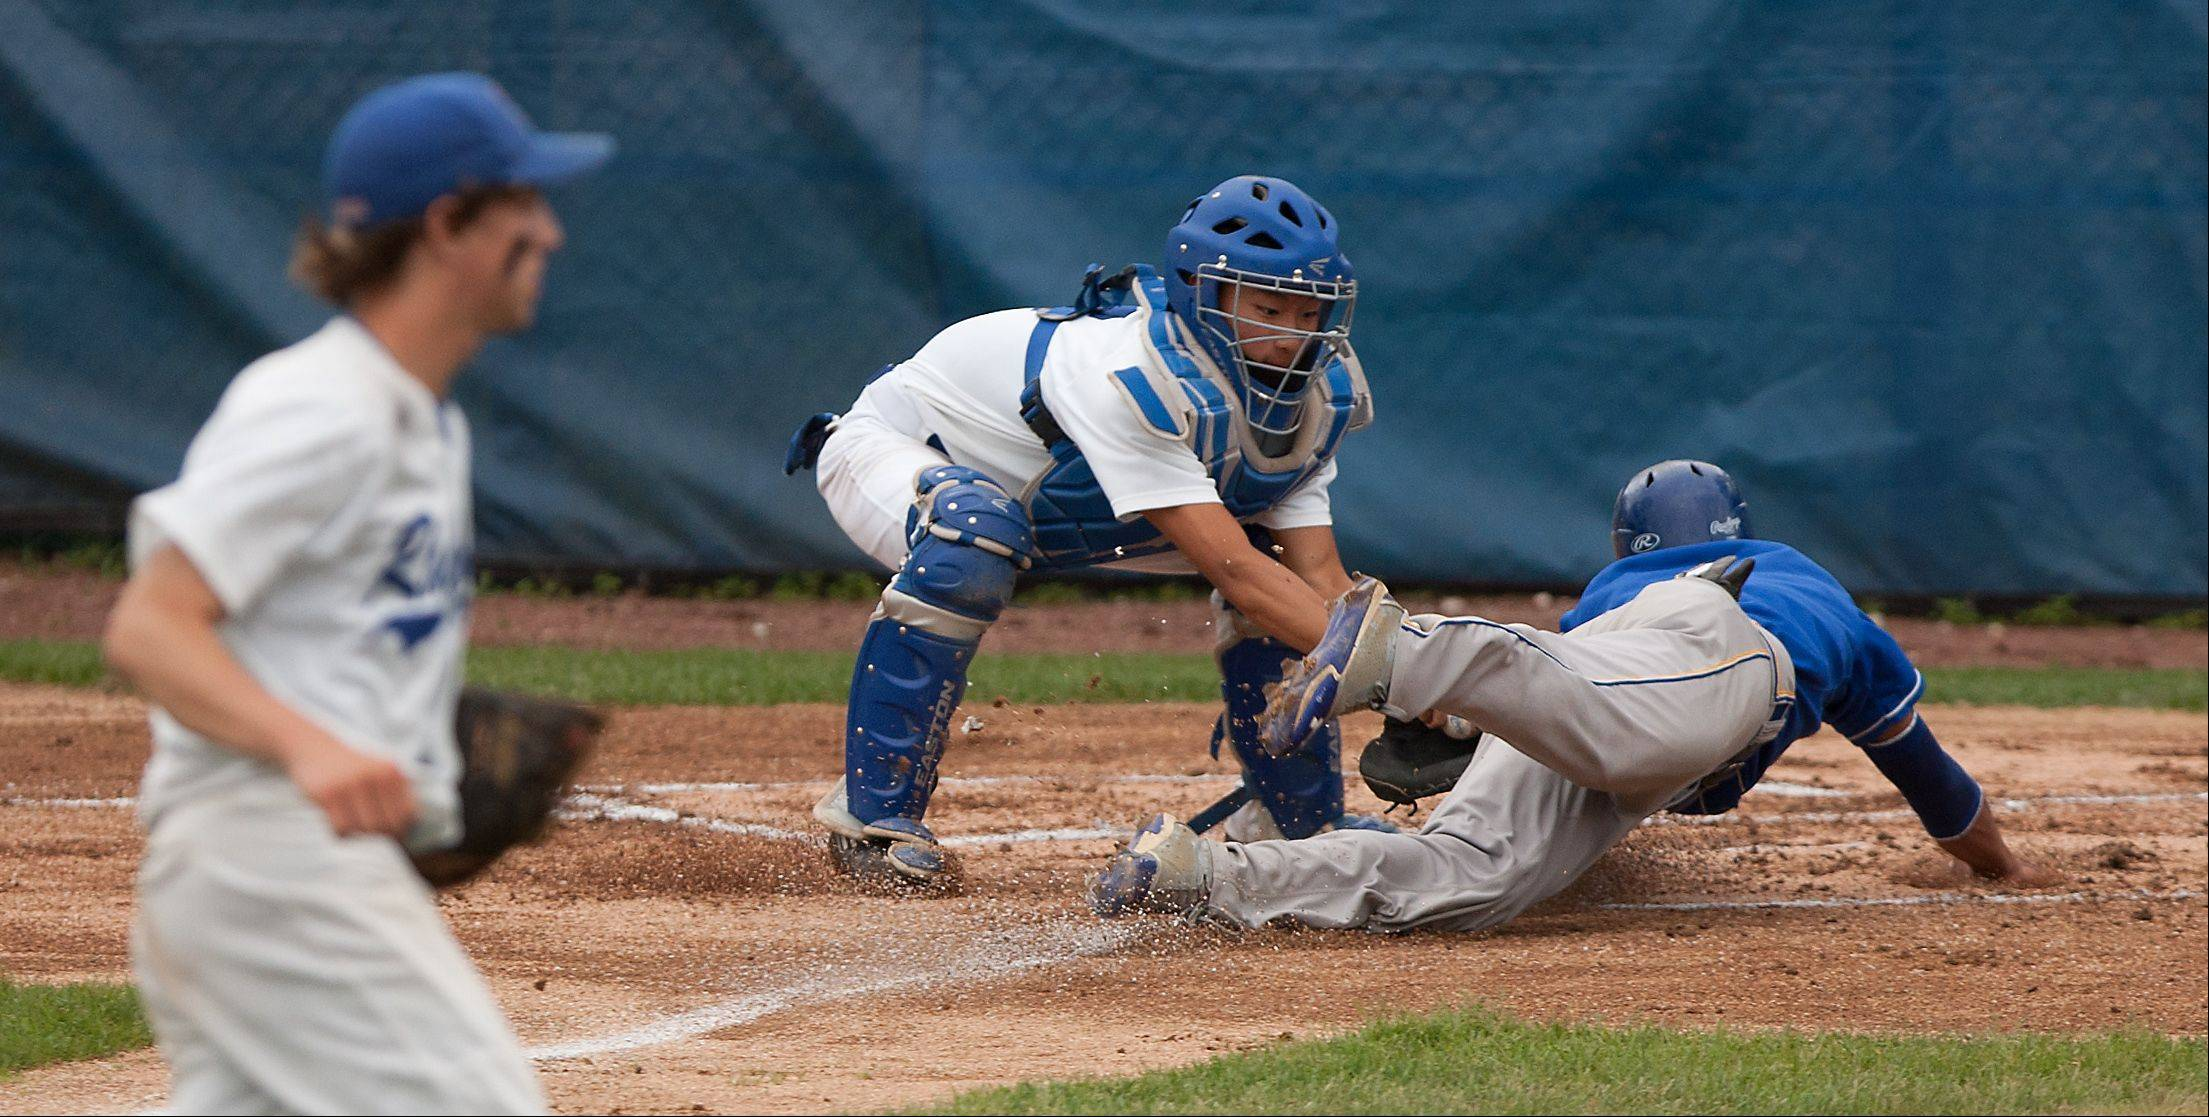 Glenbard South catcher Will Cornwell tags out Clemente's Pedro Vasquez during the Nazareth Class 4A sectional semifinals in LaGrange Park.